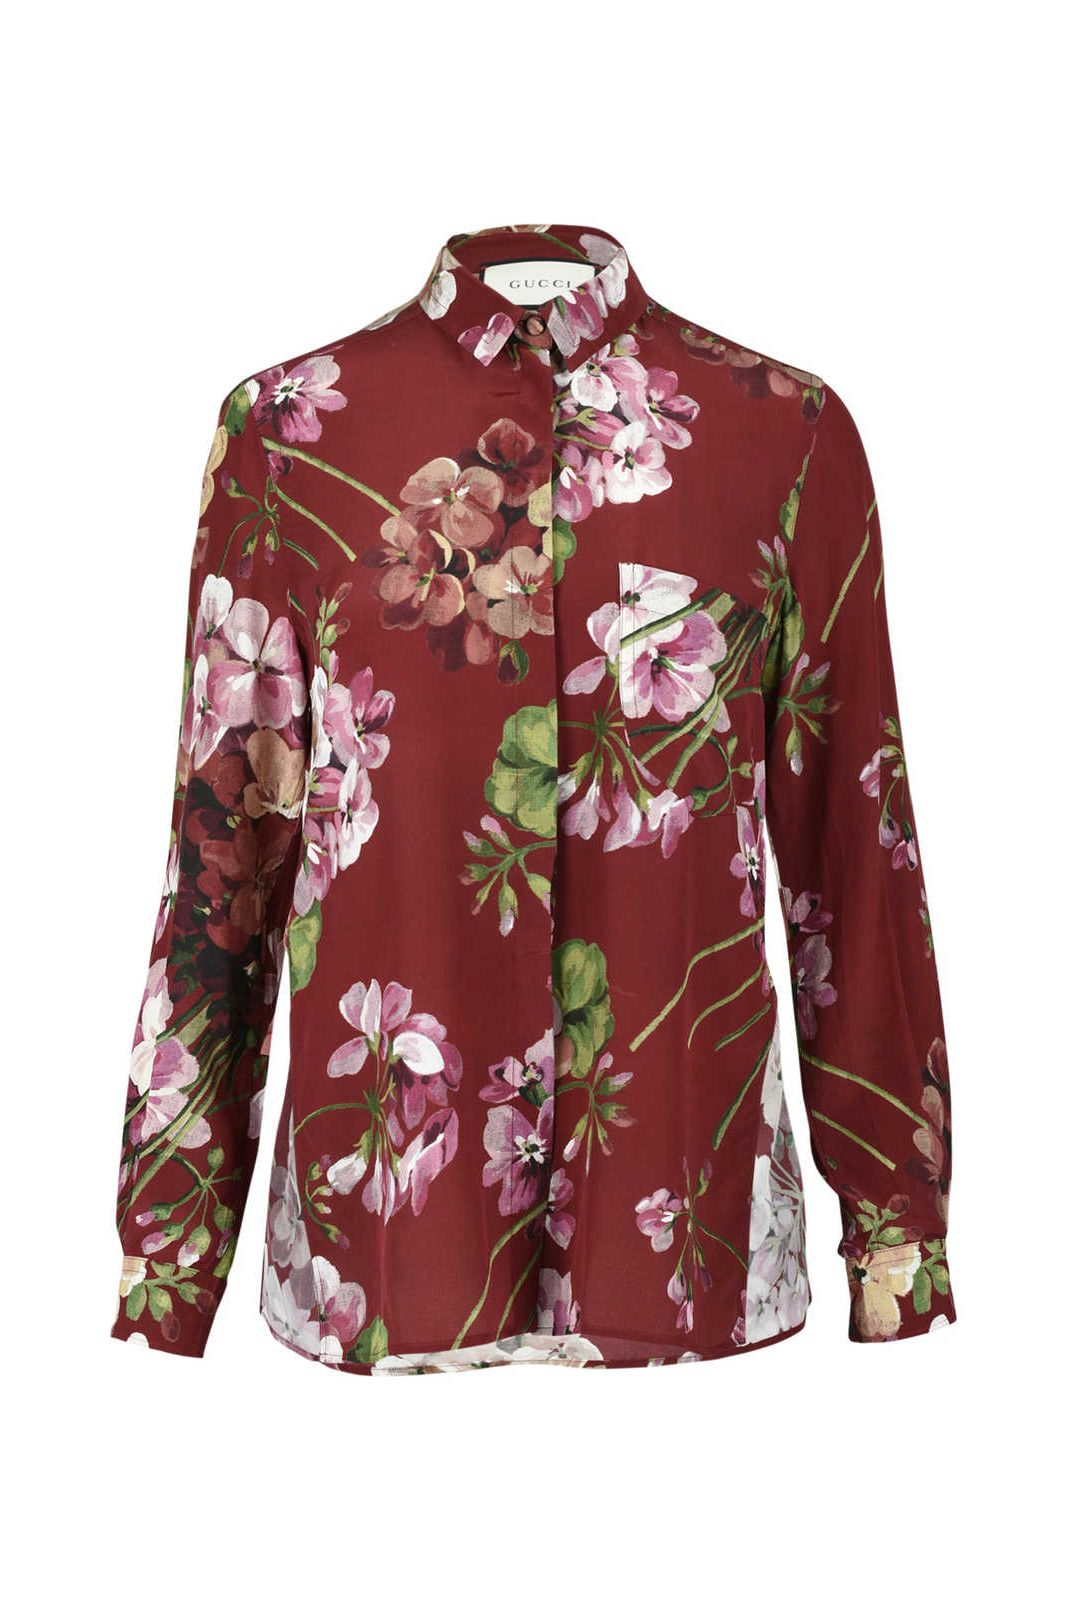 GUCCI - RED BLOOMS PRINT BLOUSE